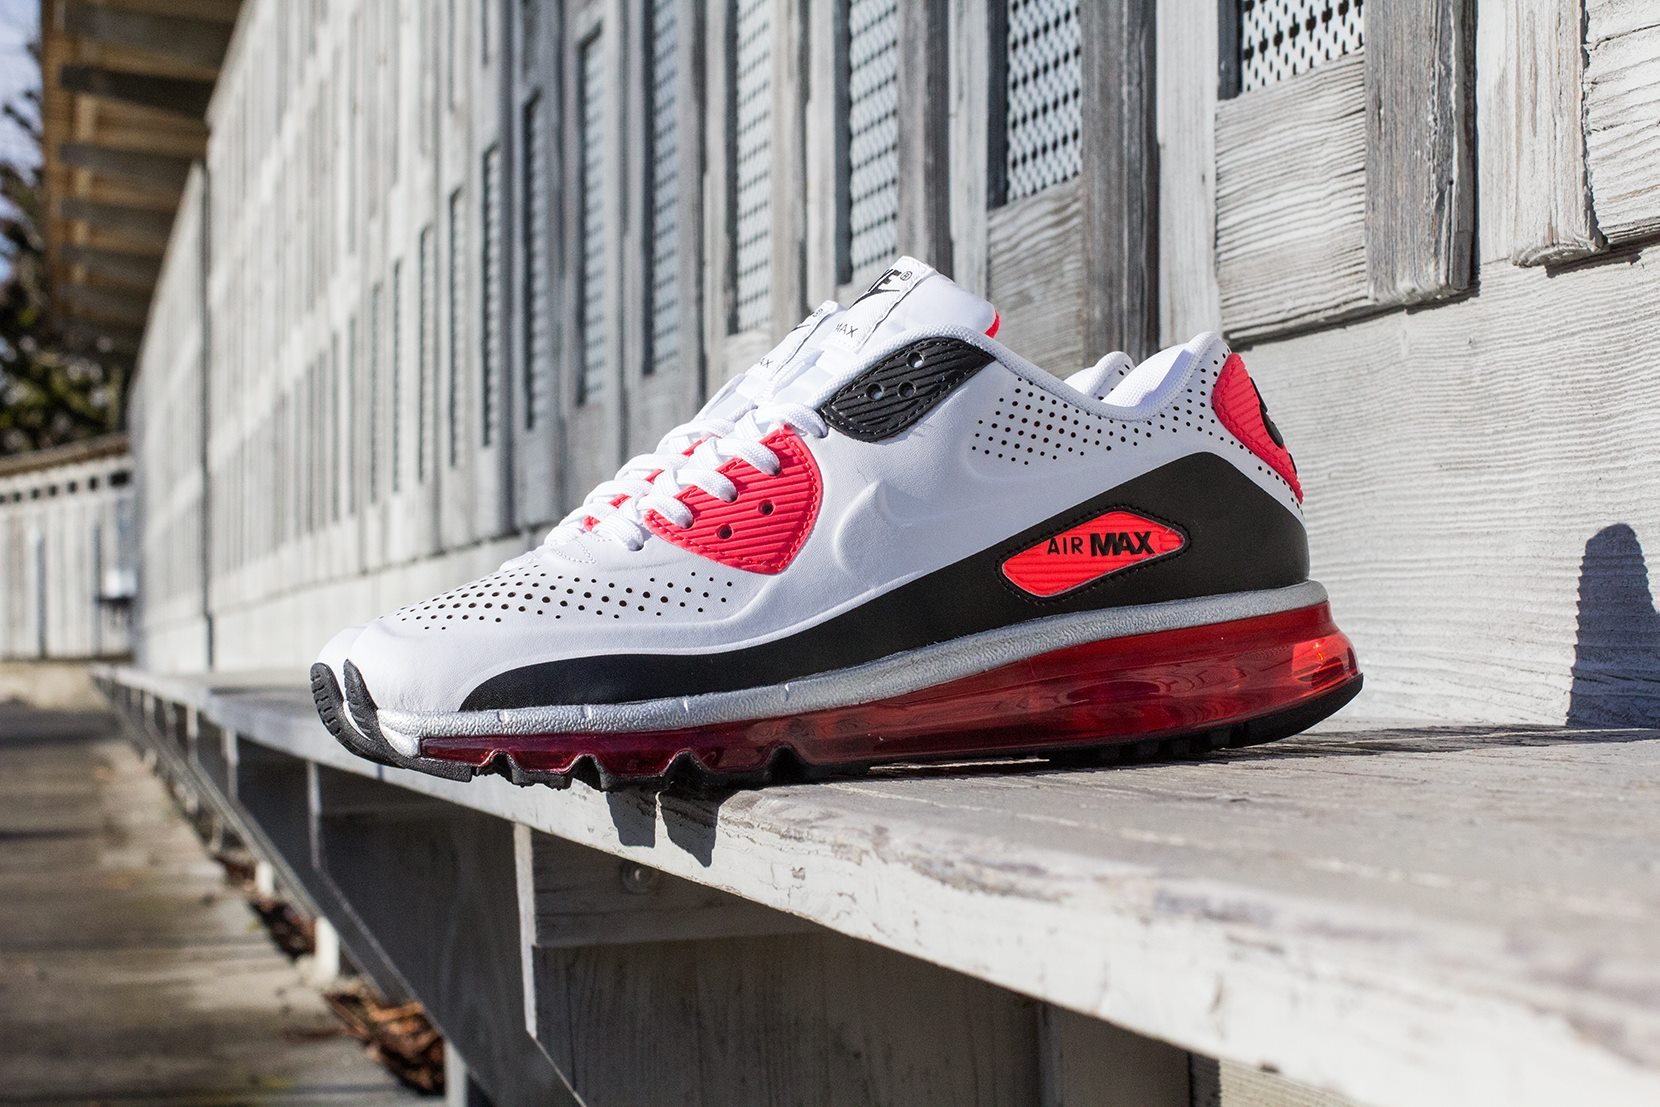 Nike-Air-Max-90-2014-Leather-Quickstrike-1